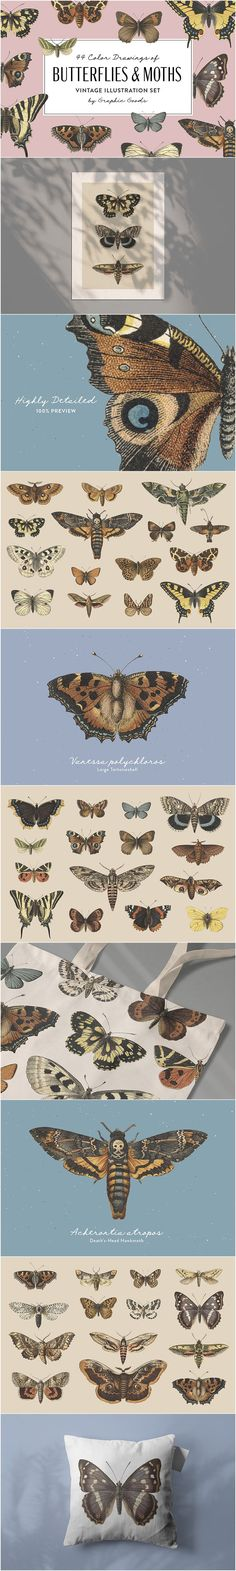 A collection of beautiful color illustrations of butterflies and moths restored from books. This set contains 44 transparent hi-res PNG images Leopard Moth, Tiger Moth, Retro Logos, Apparel Design, Graphic Illustration, Woodland, Butterflies, Graphics, Graphic Design